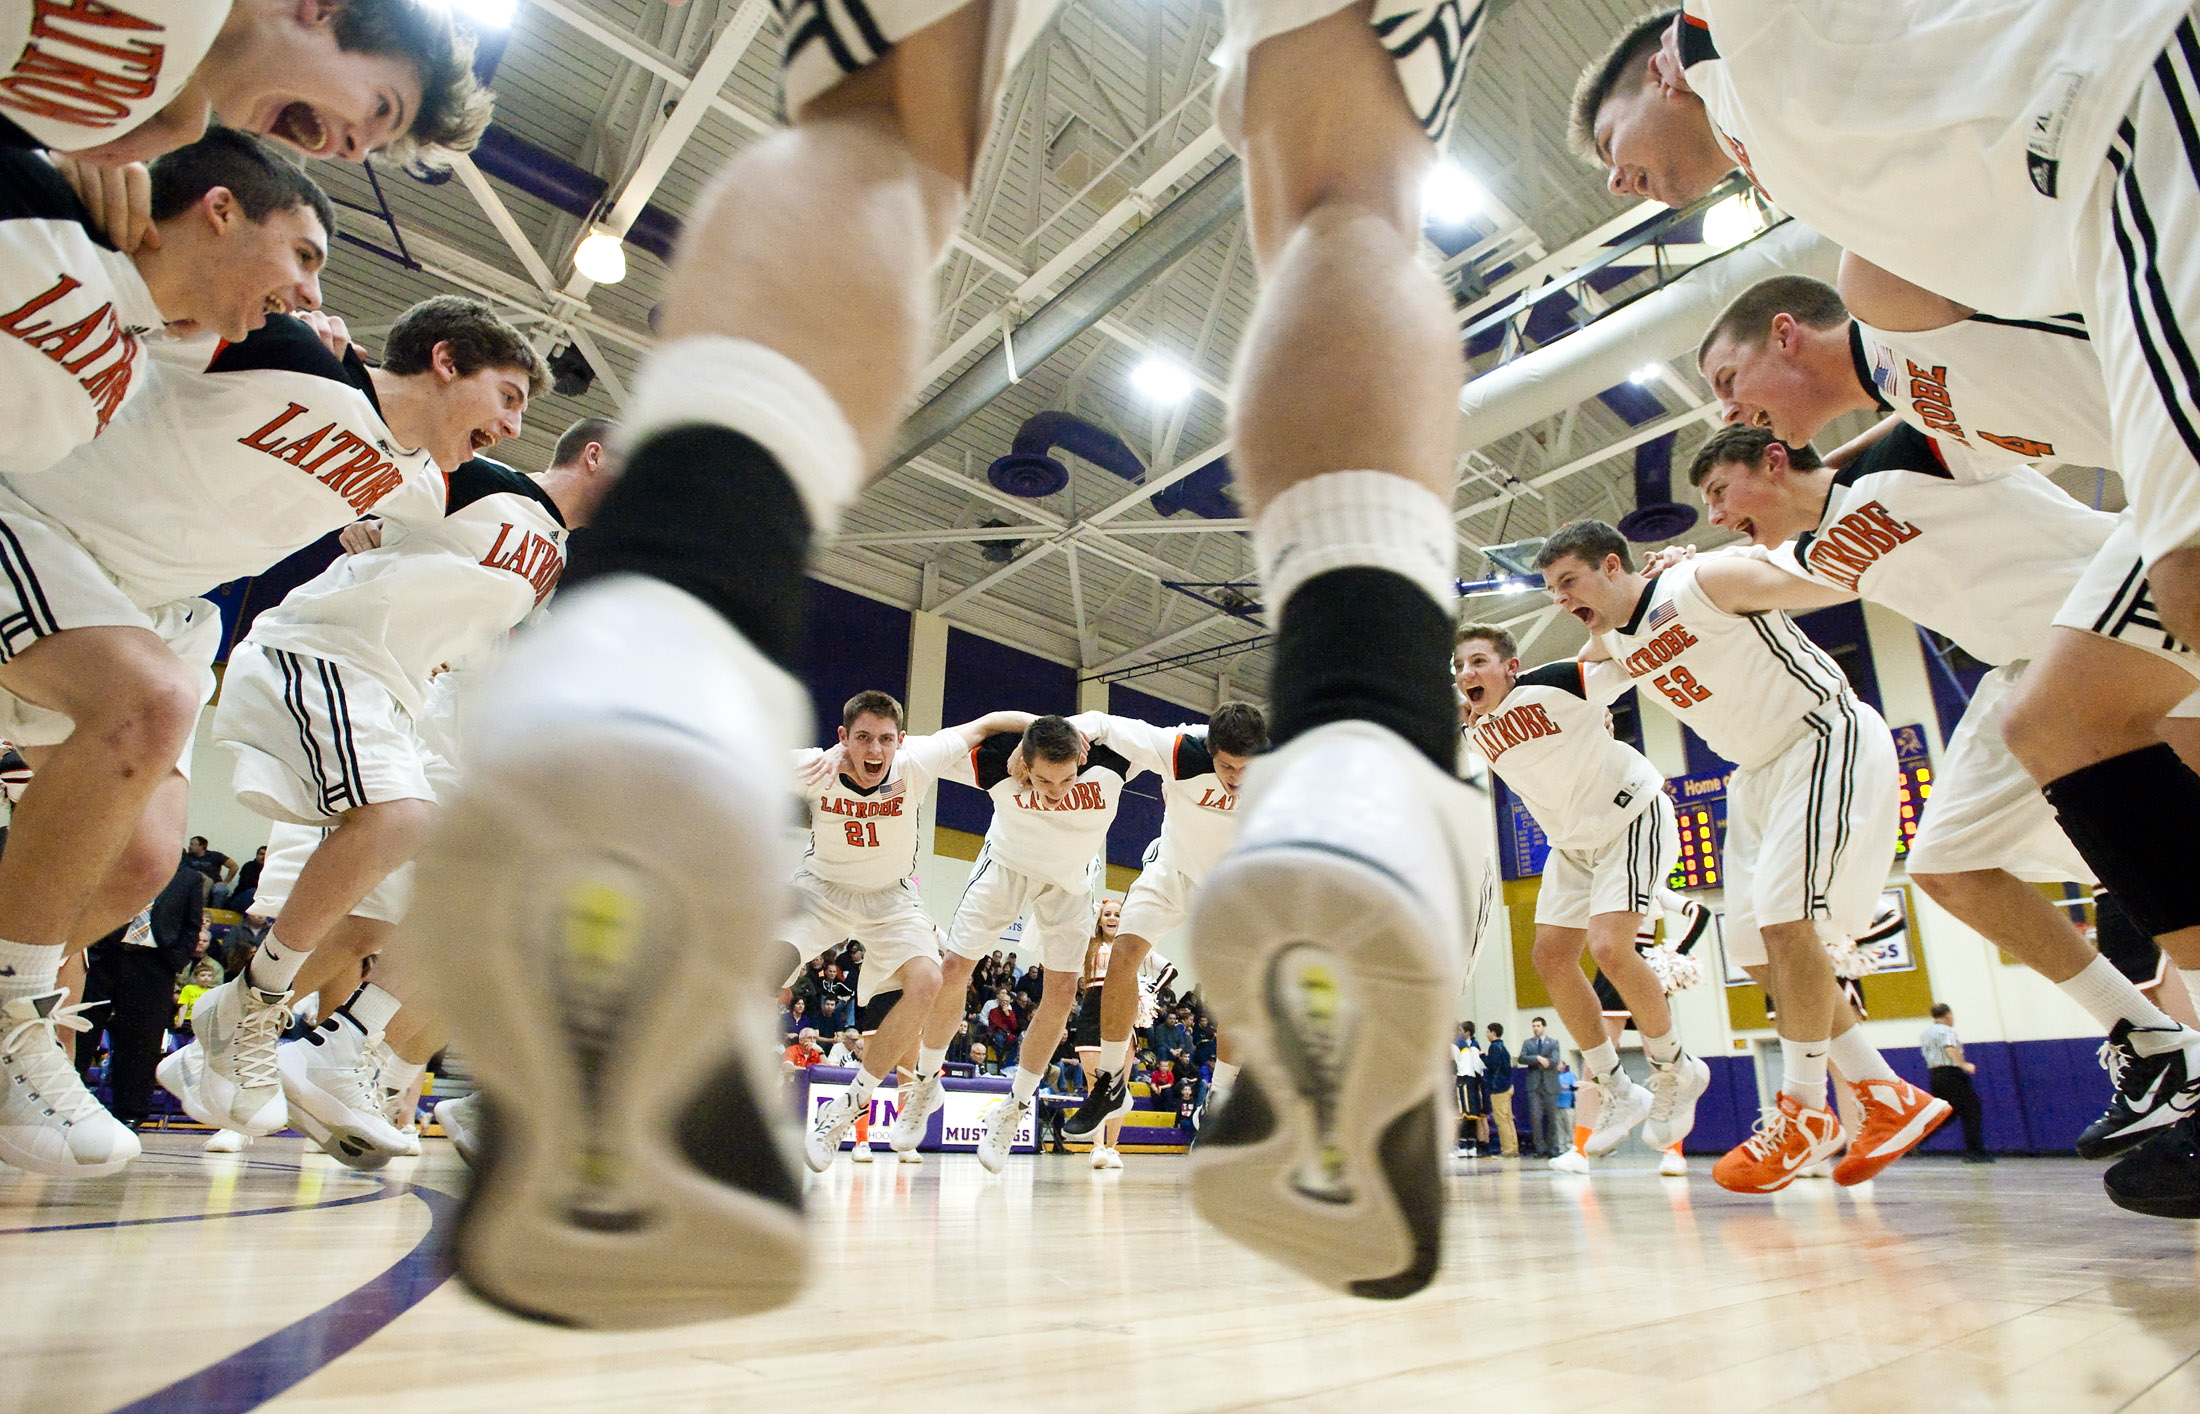 Latrobe amps up before playing against Mt. Lebanon during a WPIAL Class AAAA first round basketball game on Thursday, Feb. 18, 2016 at Plum High School. Latrobe won 72-55.